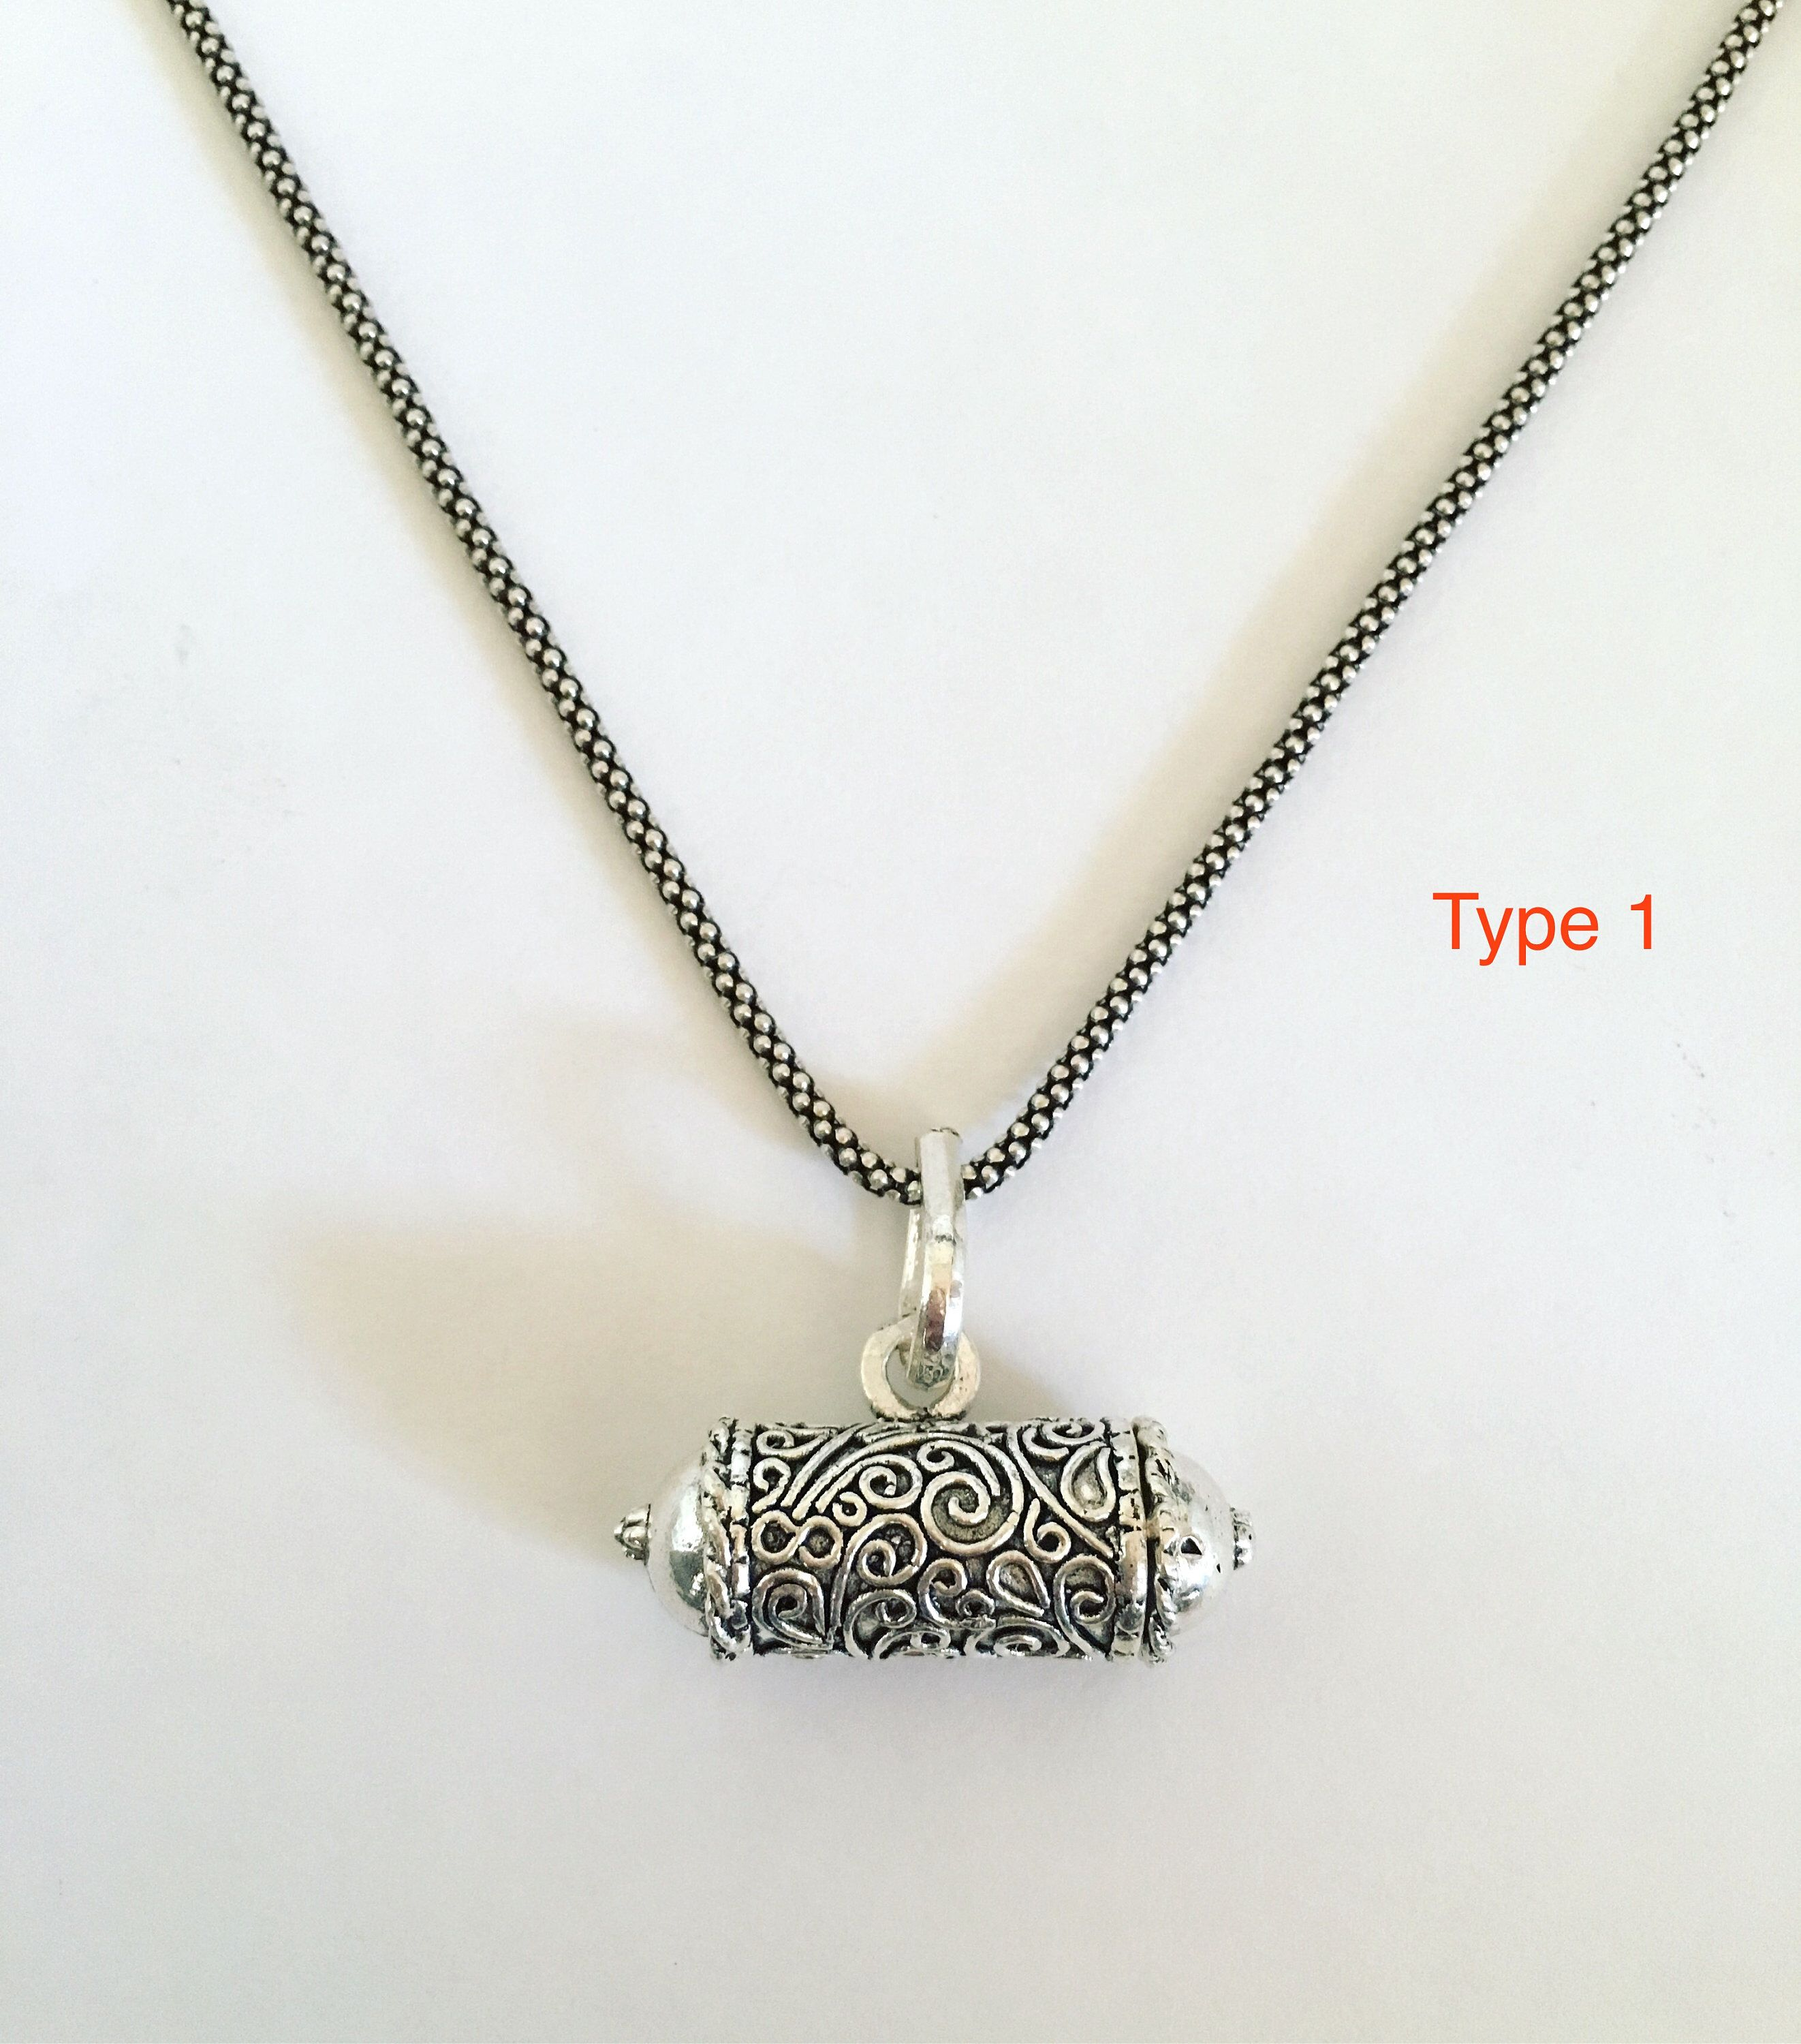 05f9c46276cd1f Excited to share the latest addition to my #etsy shop: Locket charm silver,  antique india kavach taweez sterling silver prayer box necklace, india  locket ...